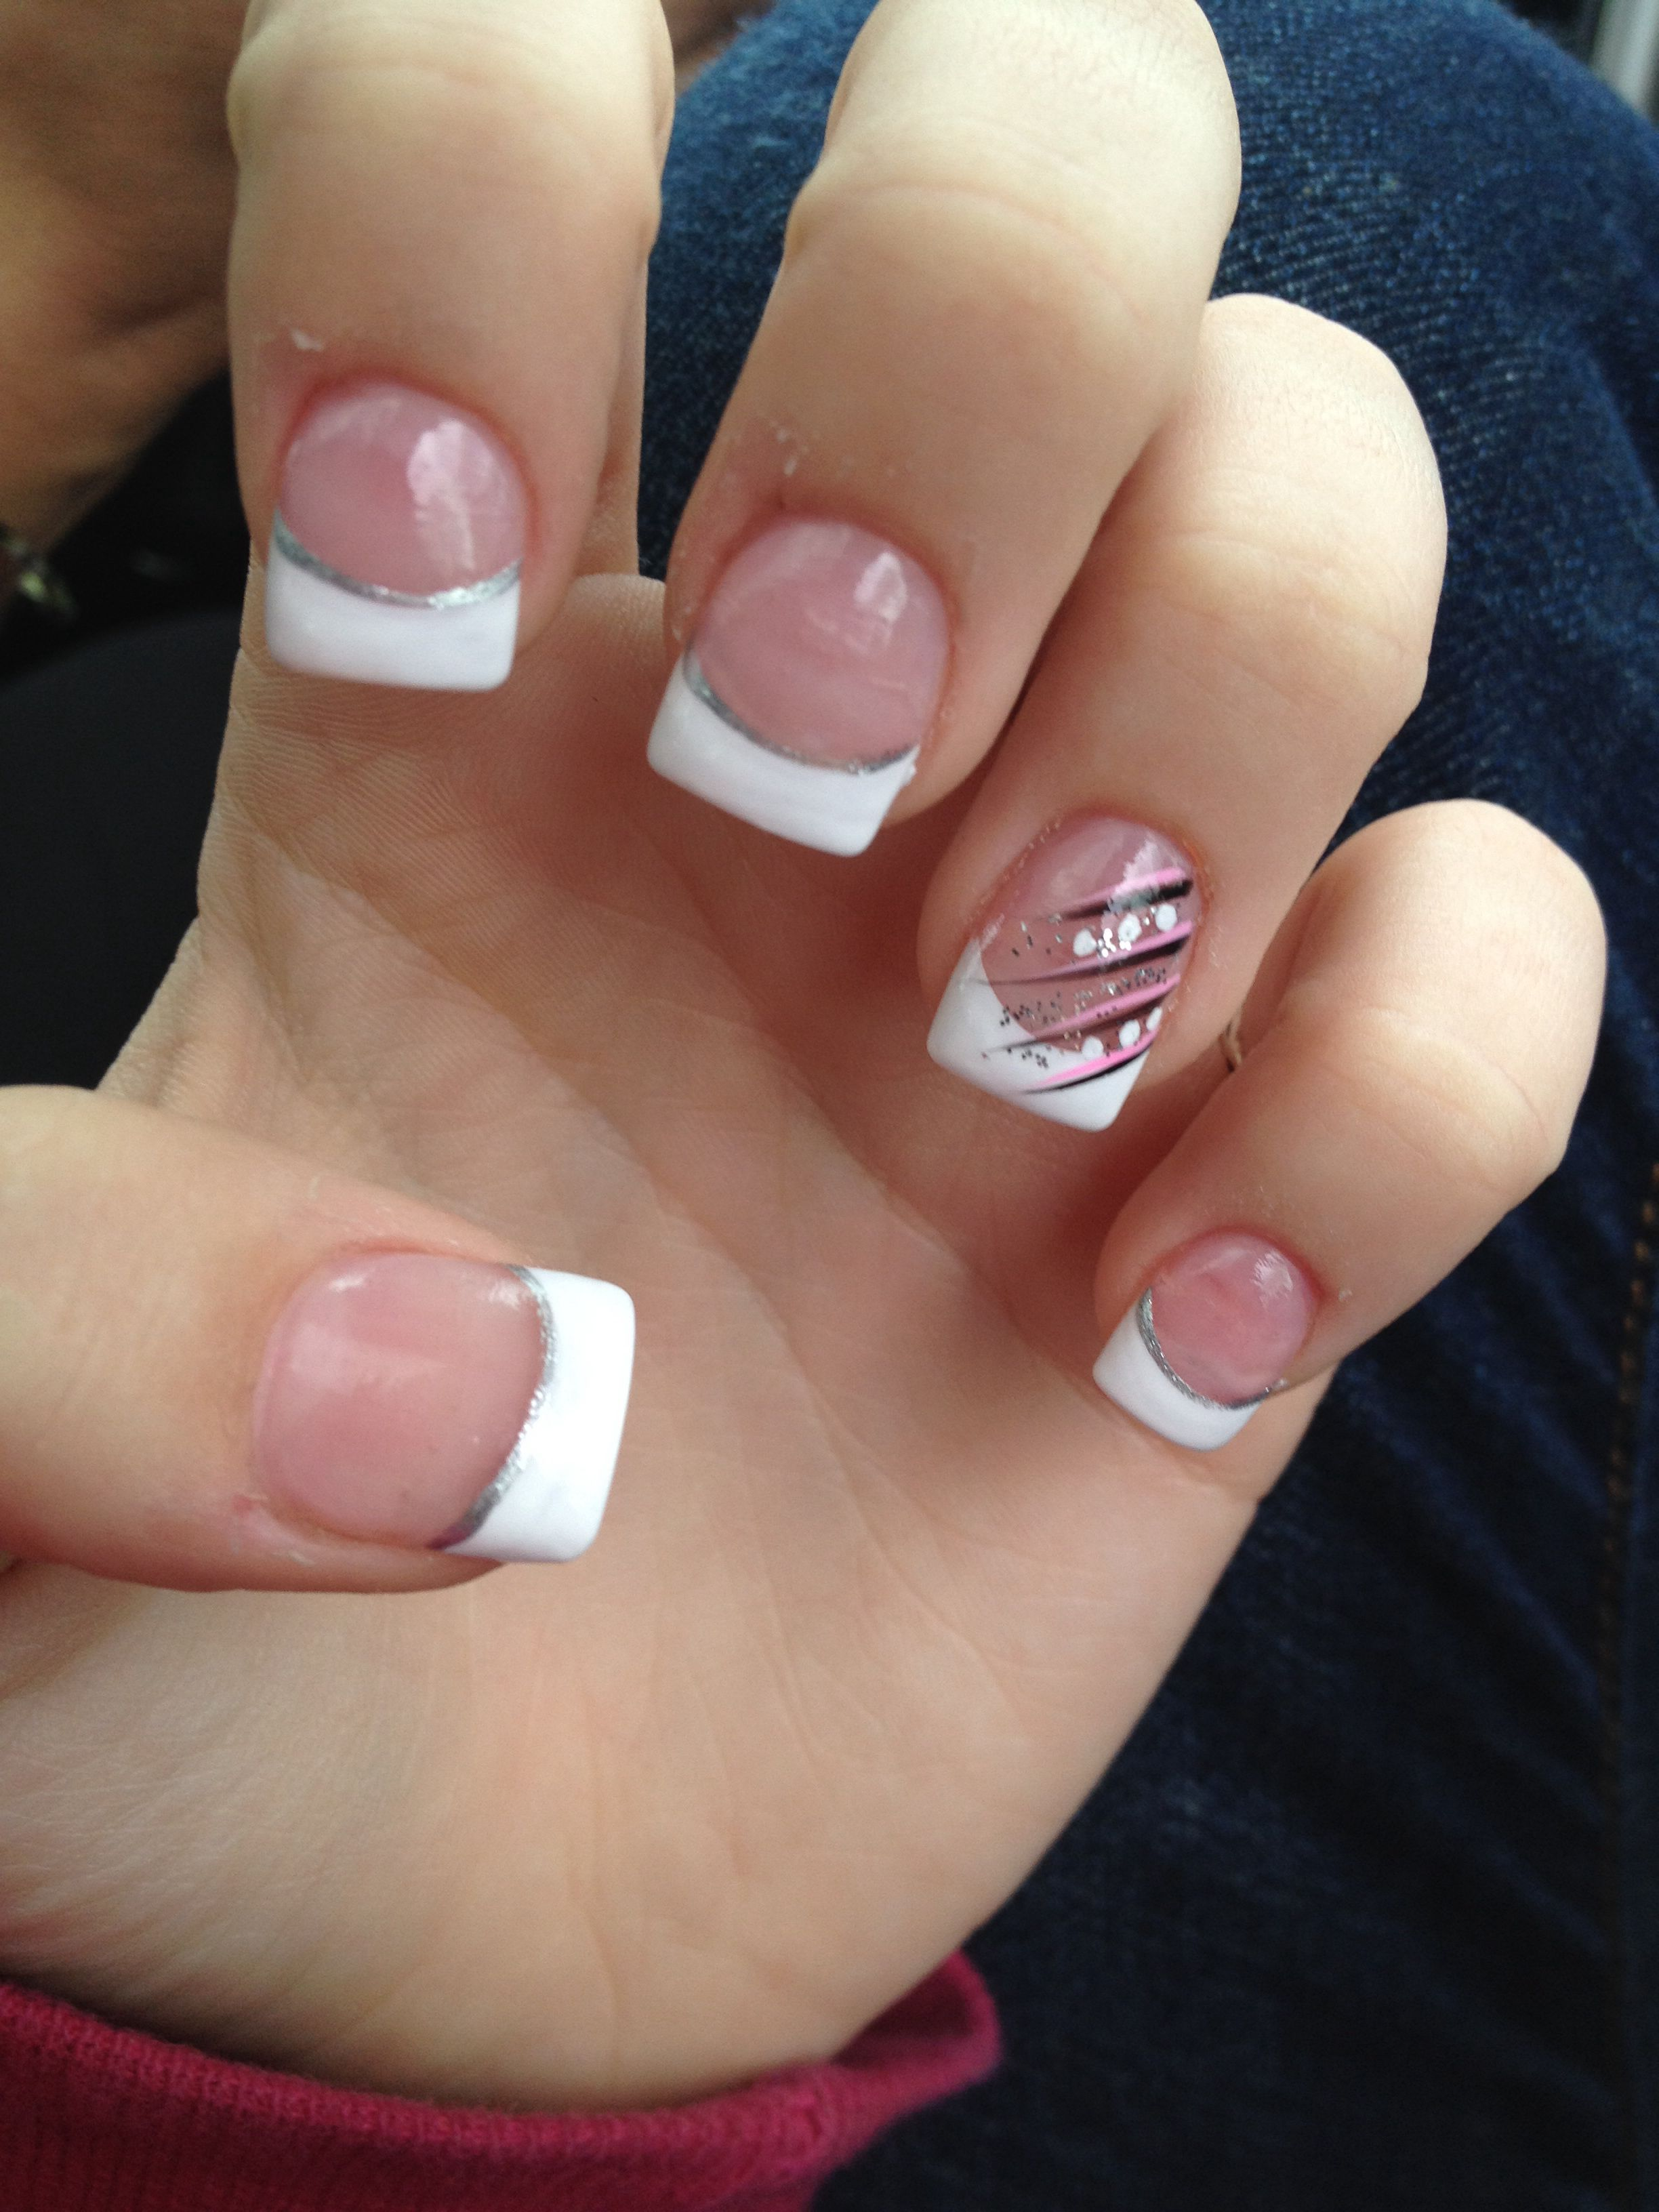 Acrylic French Tip Nail French Tip Acrylic Nails French Tip Nail Designs French Tip Nail Art